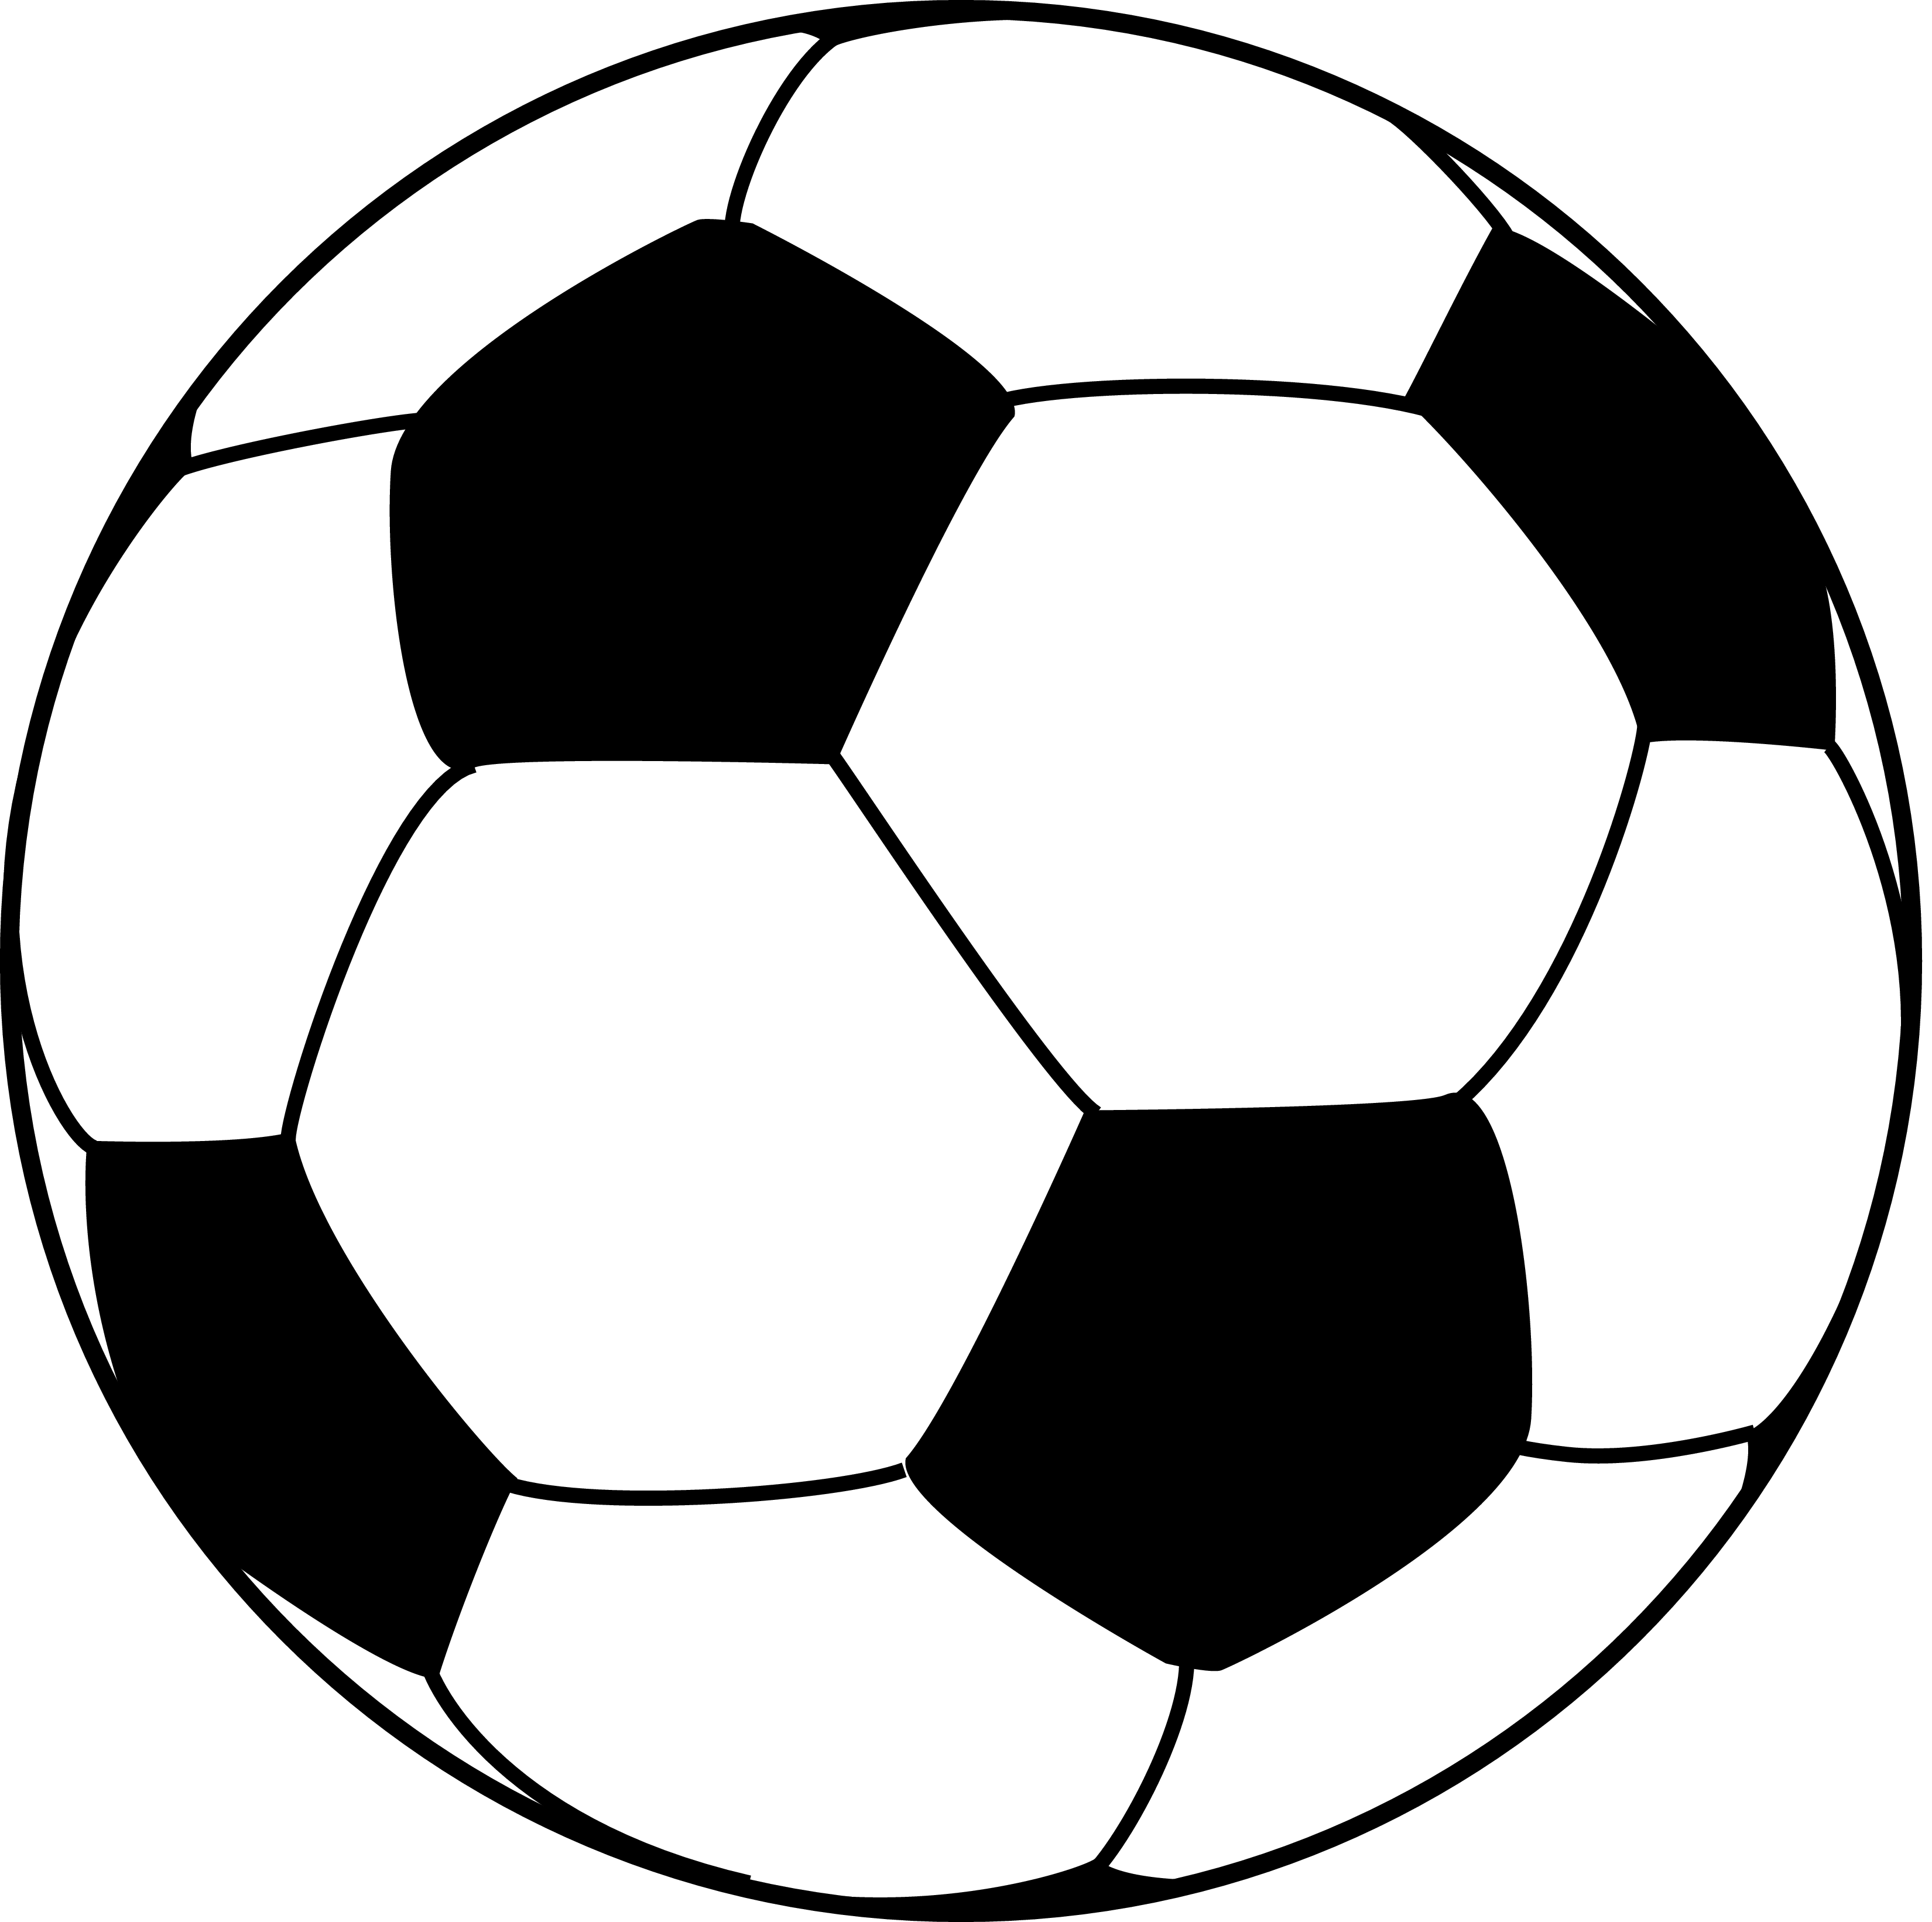 Soccer ball pattern template. Top drawing football clipart library